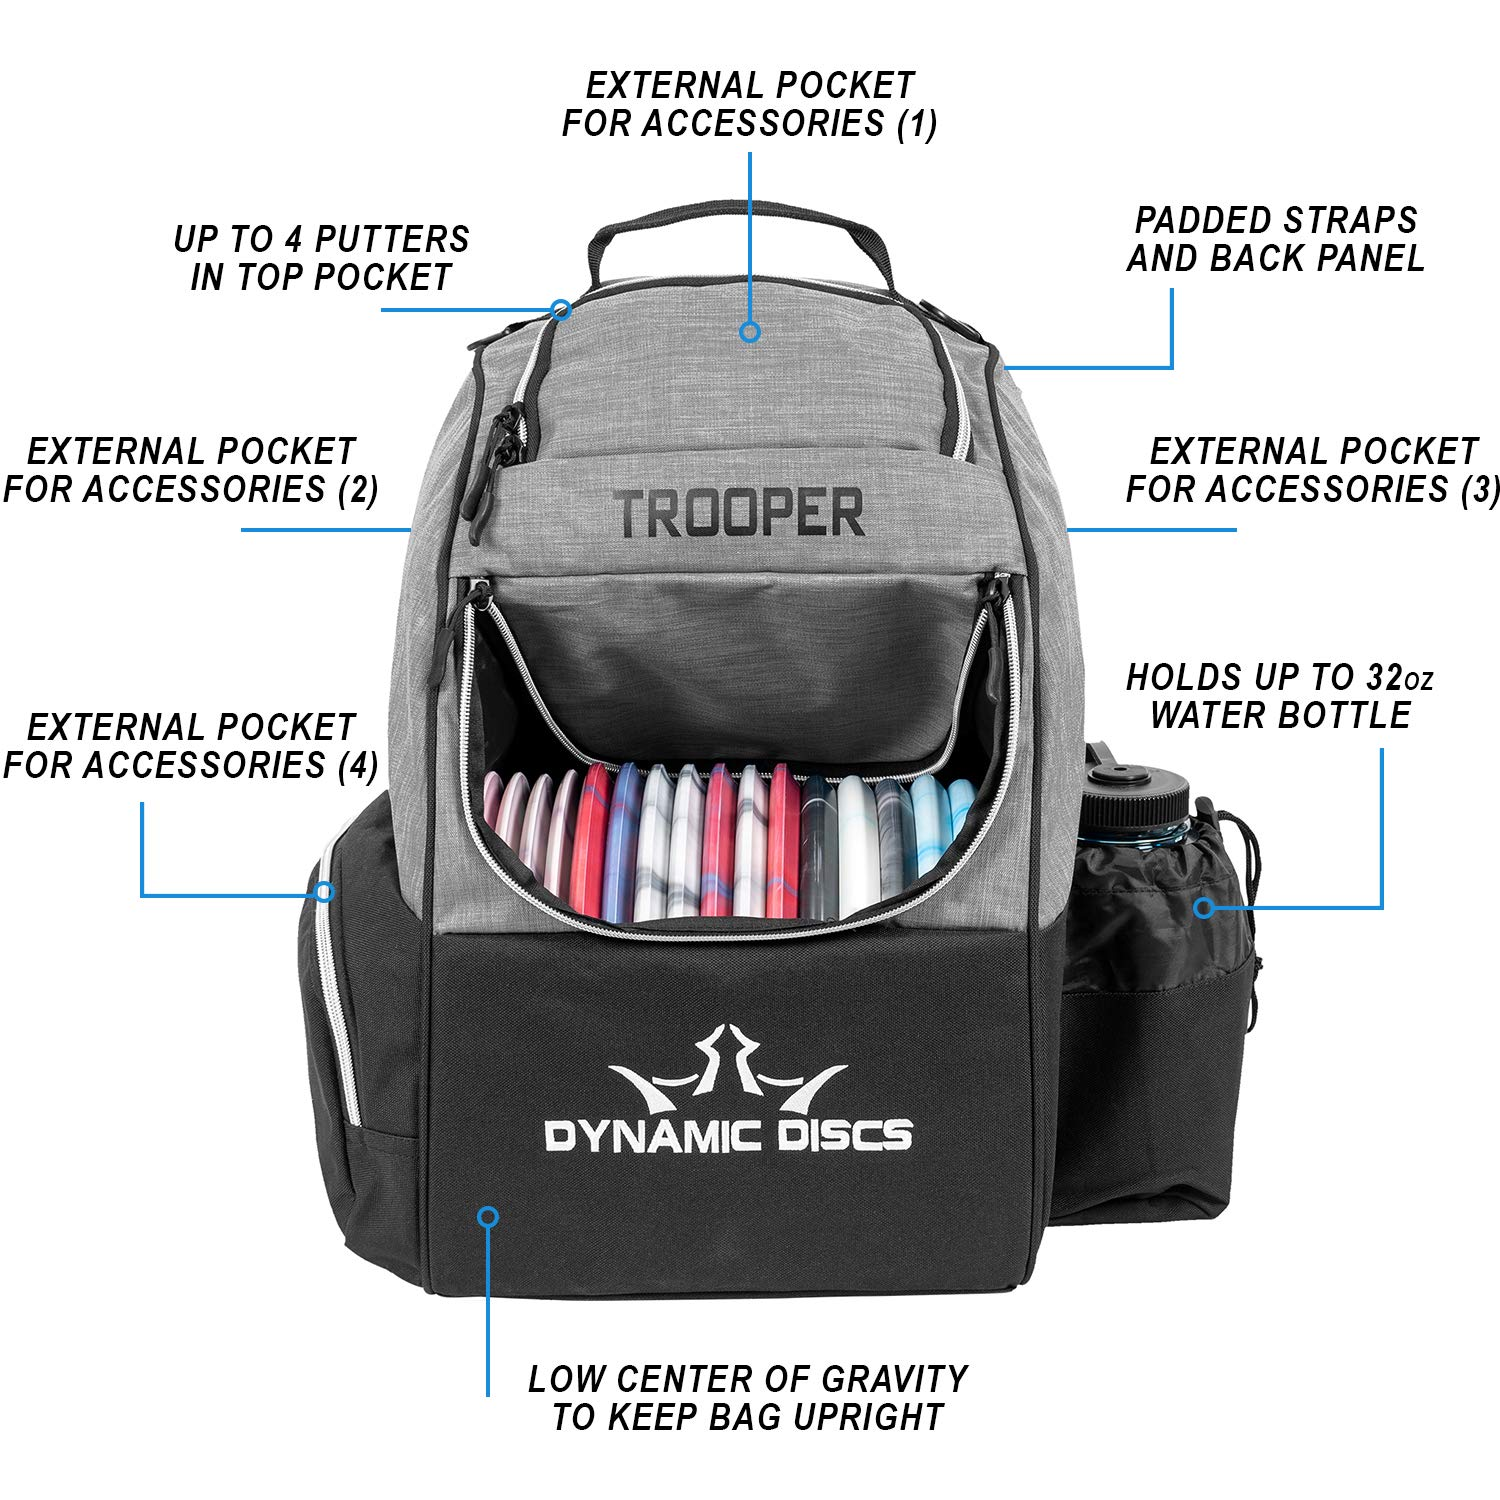 Dynamic Discs Trooper Disc Golf Backpack | Heather Gray | Frisbee Disc Golf Bag with 18+ Disc Capacity | Introductory Disc Golf Backpack | Lightweight and Durable by D·D DYNAMIC DISCS